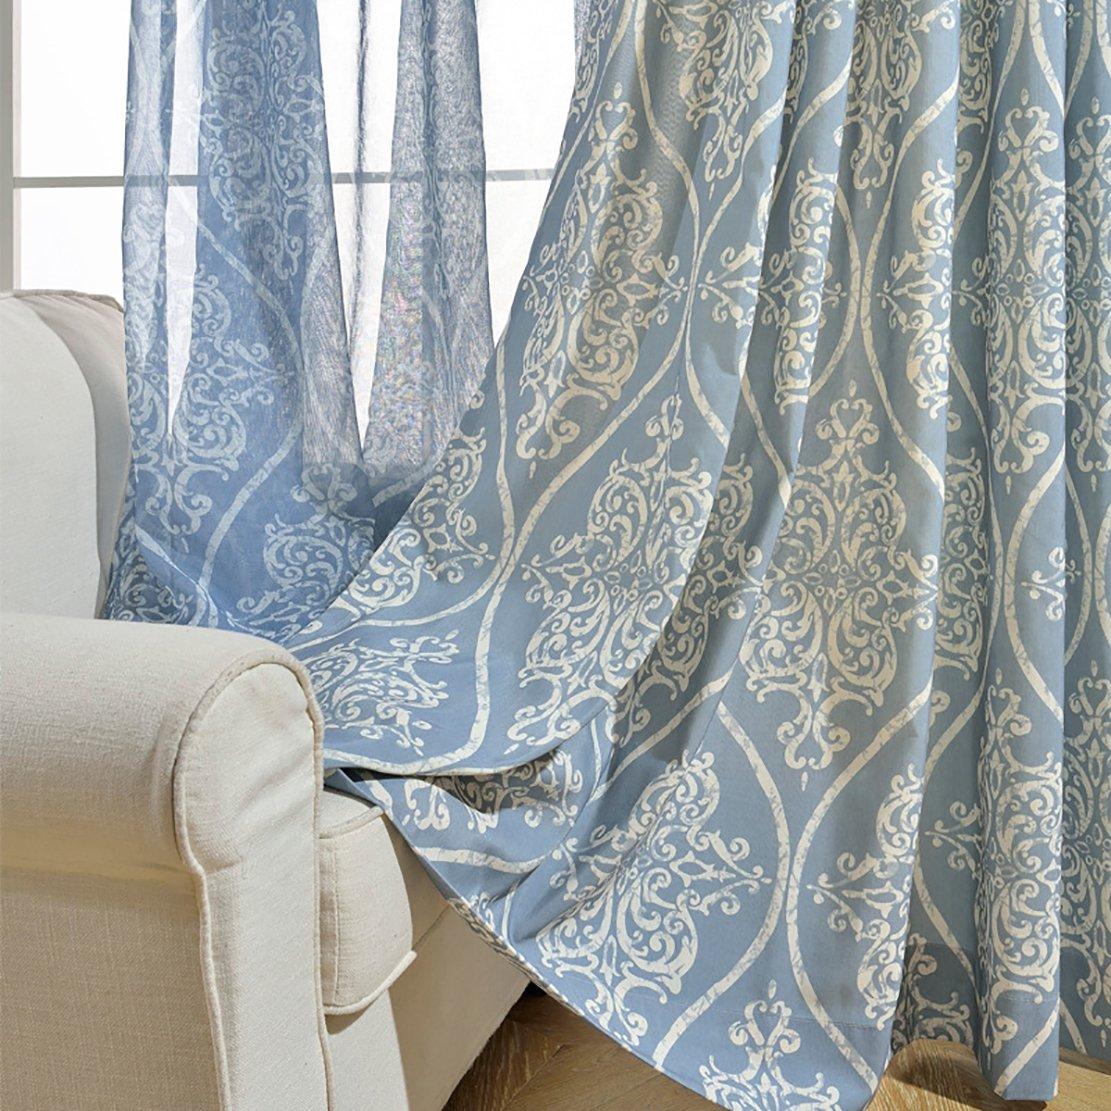 Light Blue Curtains Living Room.Light Blue Curtains For Living Room Koting 1 Panel White Damascus Pattern Curtains Drapes Grommet Top 42w By 84l Inch